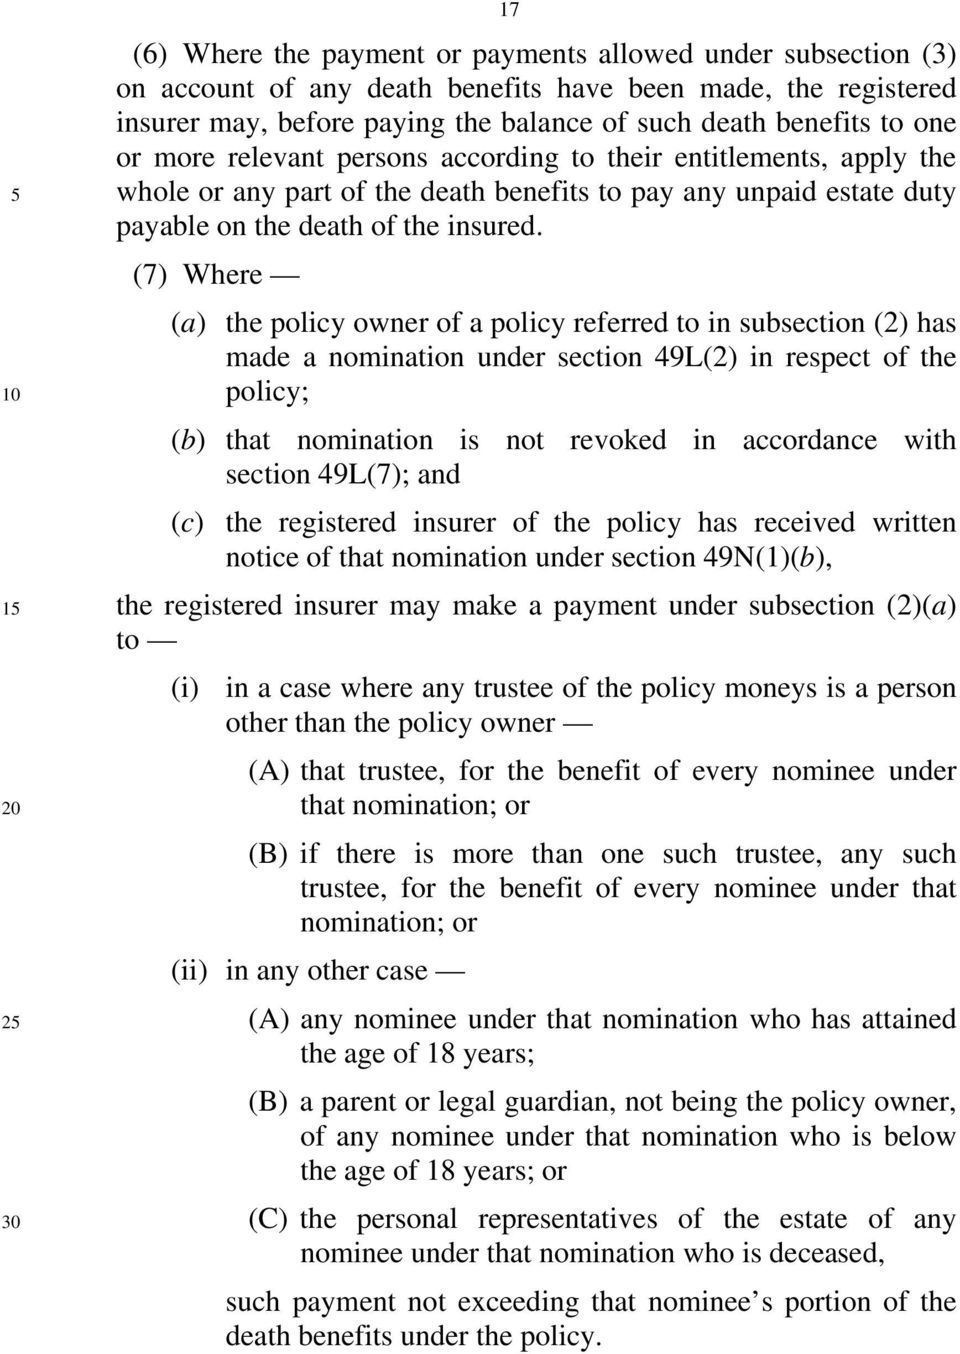 (7) Where (a) the policy owner of a policy referred to in subsection (2) has made a nomination under section 49L(2) in respect of the policy; (b) that nomination is not revoked in accordance with